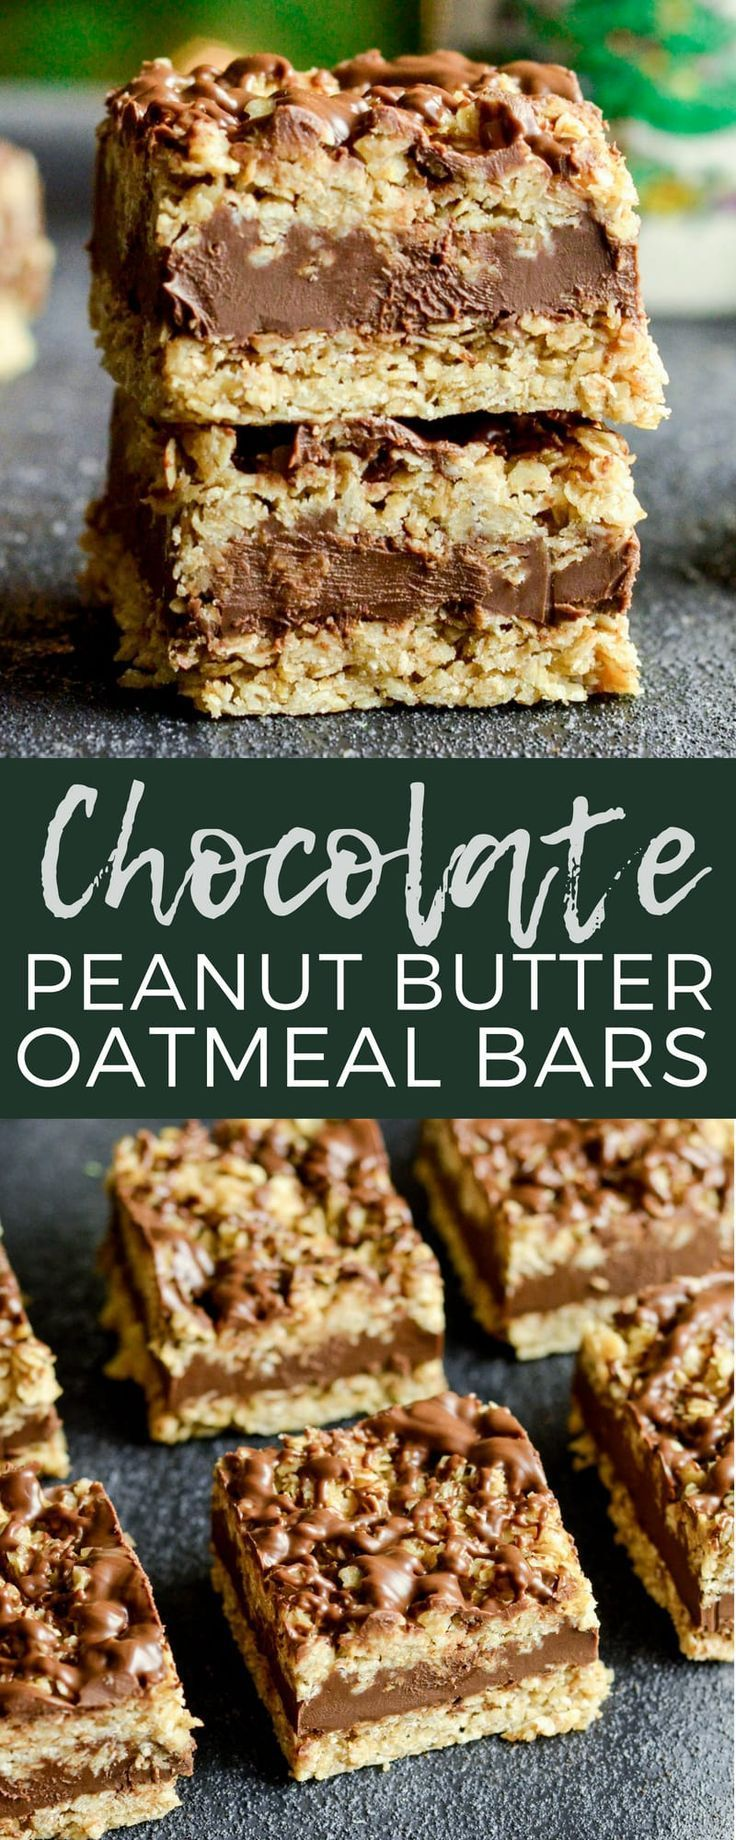 NoBake Chocolate Peanut Butter Oat Bars This delicious cookie recipe comes together in 10 minutes  is glutenfree  veganfriendly via joyfoodsunshine